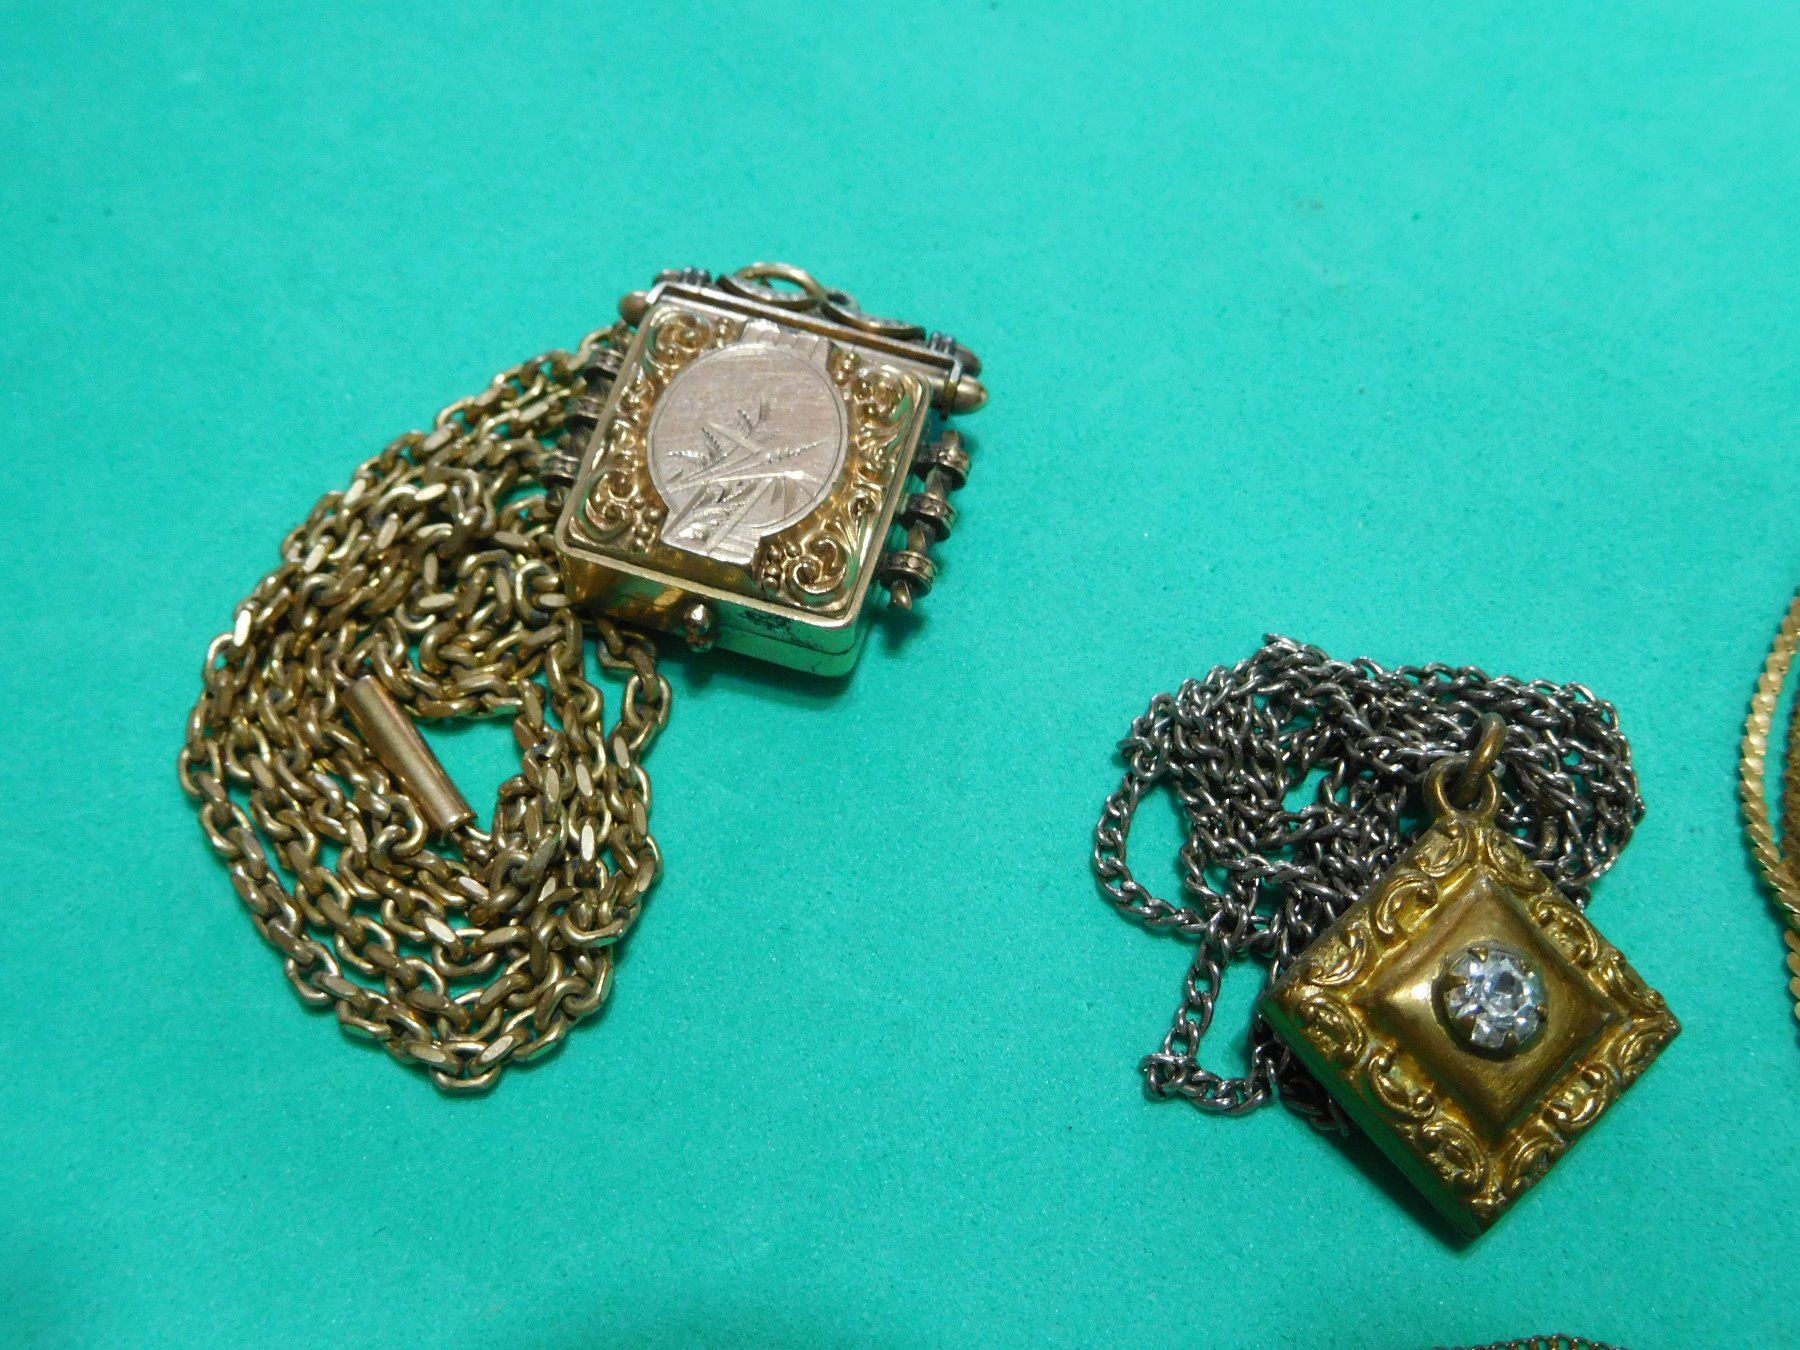 motif me nyc necklace ellie gold finish miss lockets clear locket deco antique oval square crystals ag